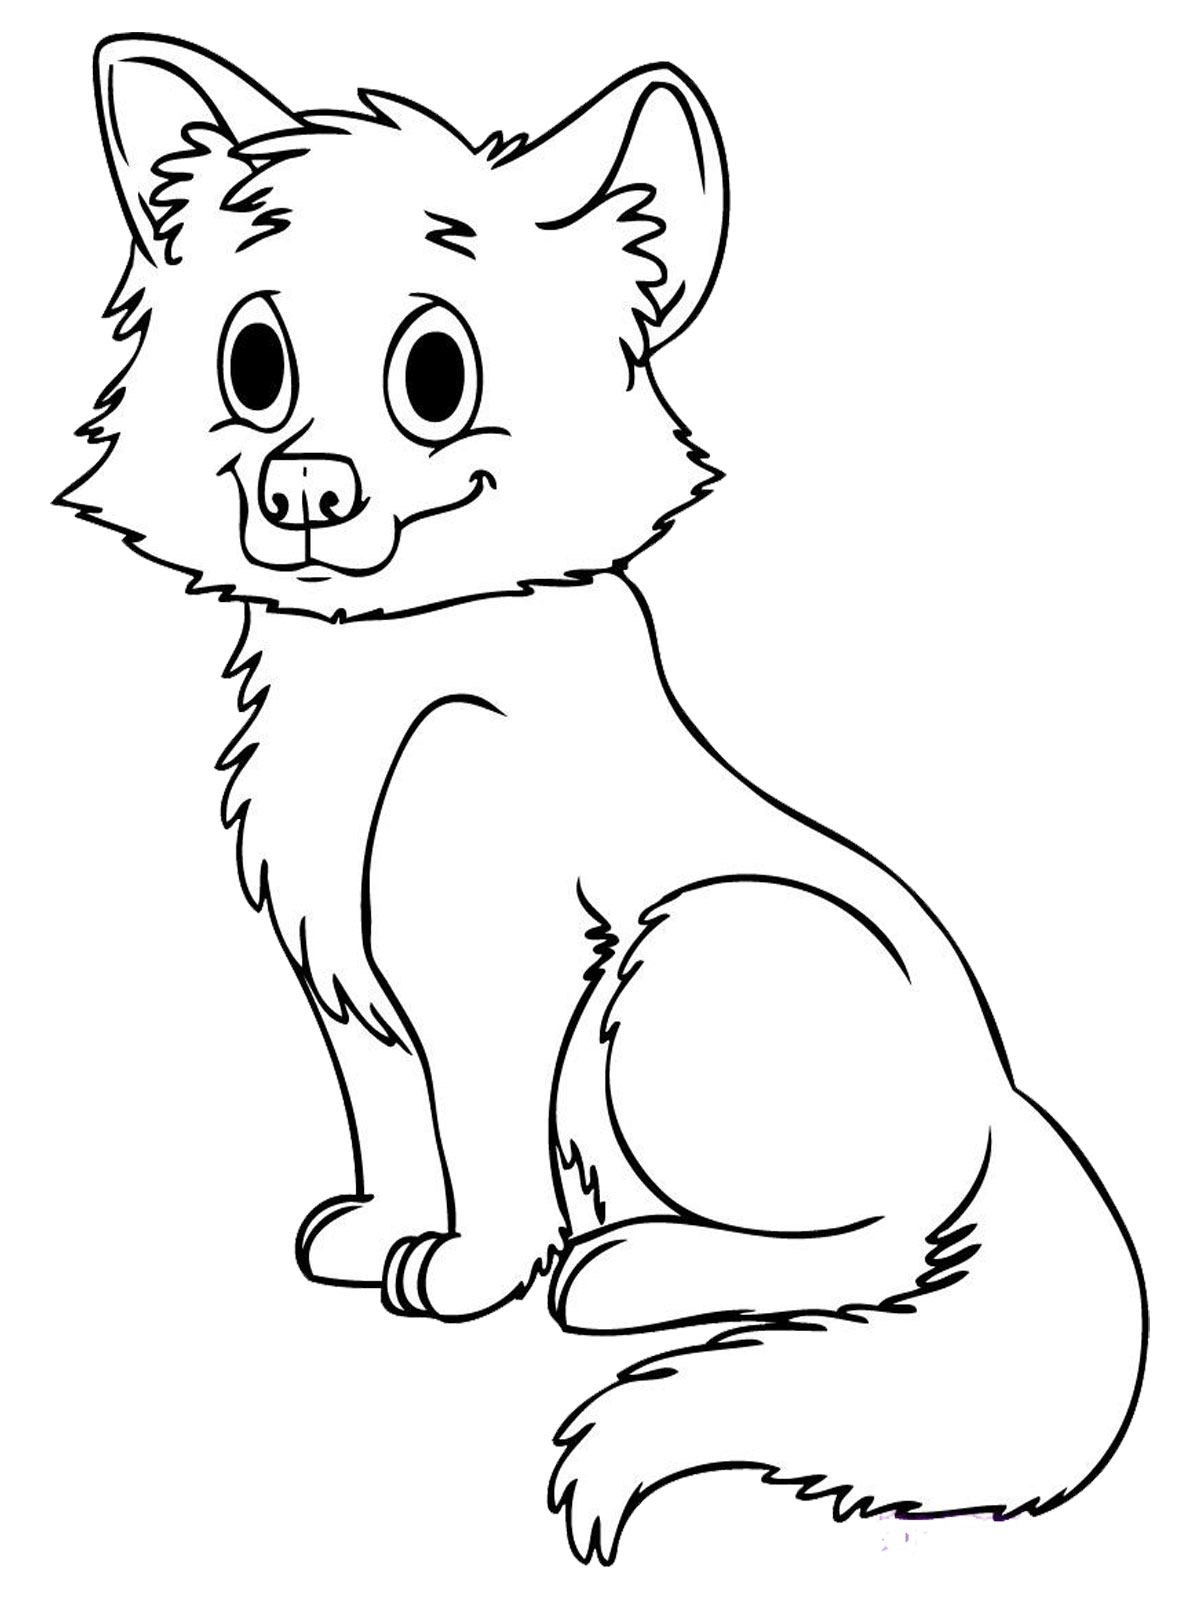 coloring animal pages - photo#28